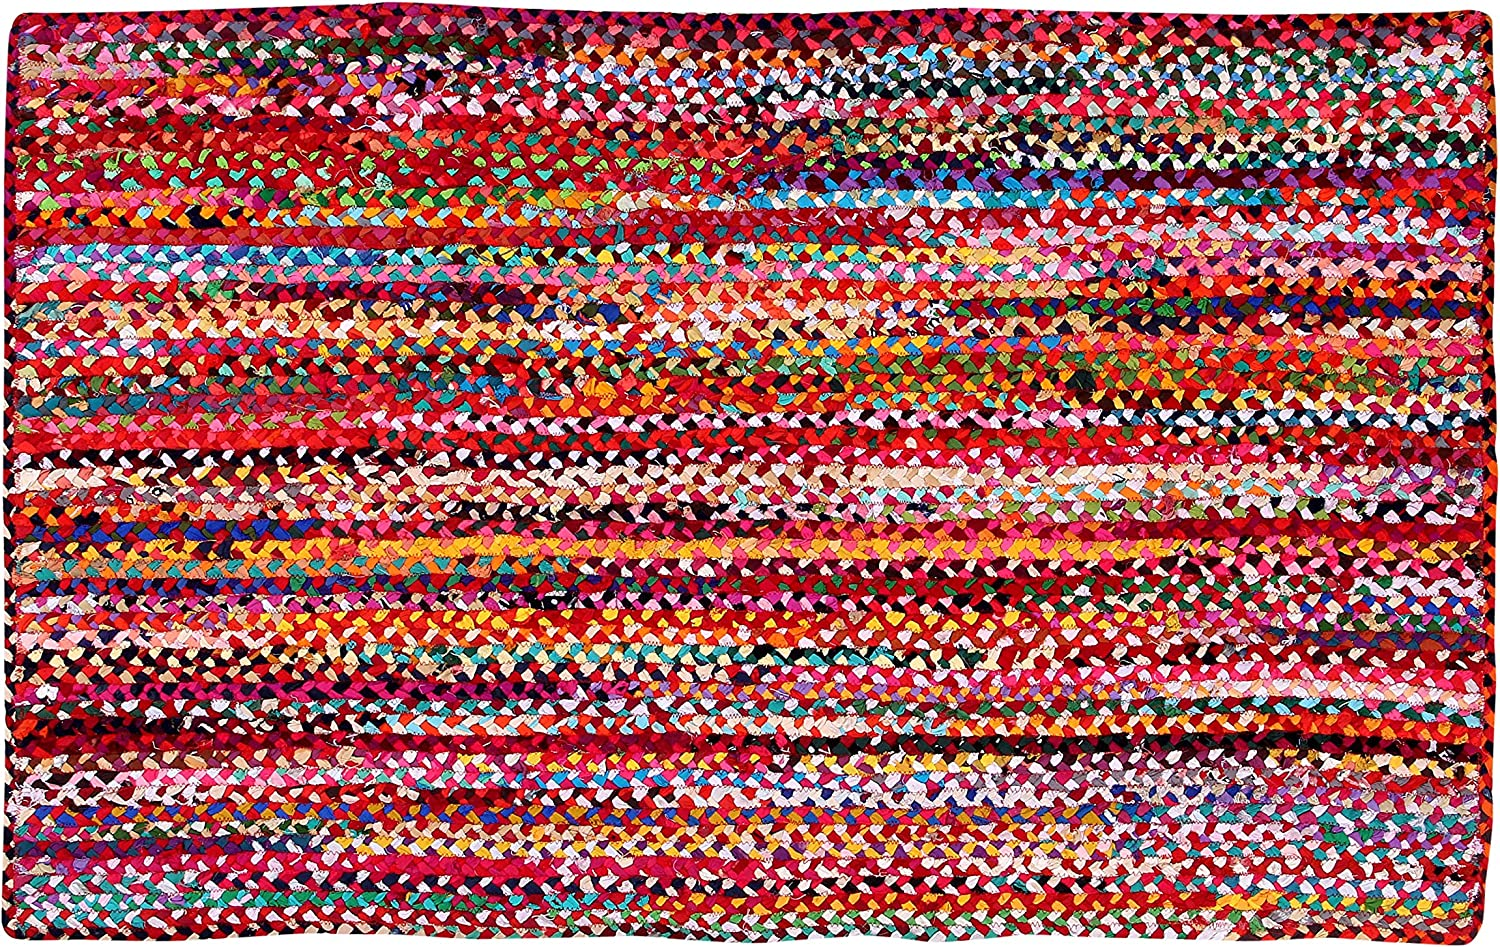 Hand Made Eco Friendly Recycled Braided Multicolor Chindi Cotton Rugs 3x5 feet Rectangle Area Rugs - Boho Bohemian Area Rugs- Reversible Area Rugs- Braided Multi Chindi Cotton Area Rugs- Multi Colors